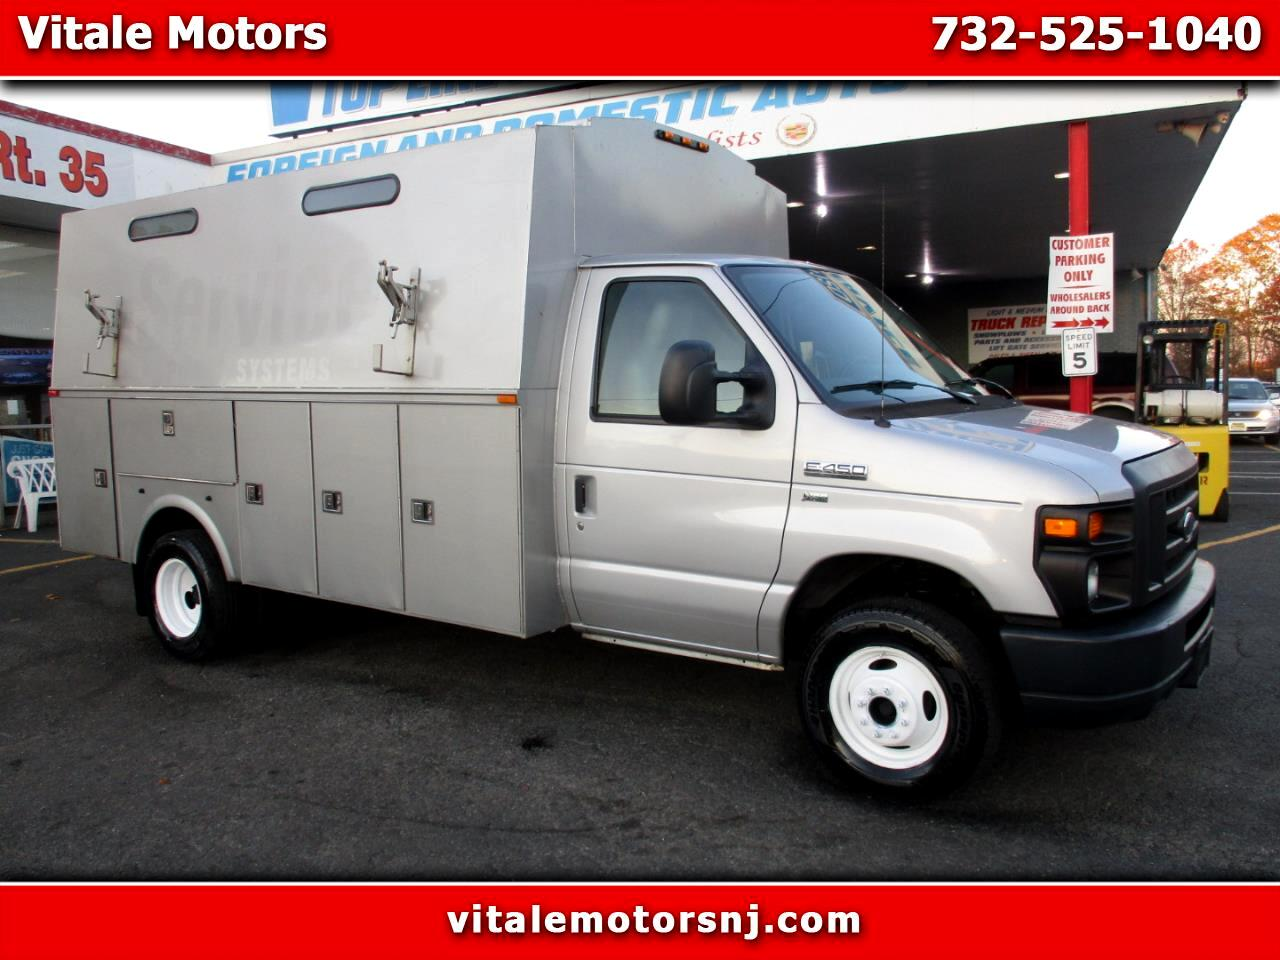 2013 Ford Econoline E450 ENCLOSED UTILITY W/ LIFTGATE